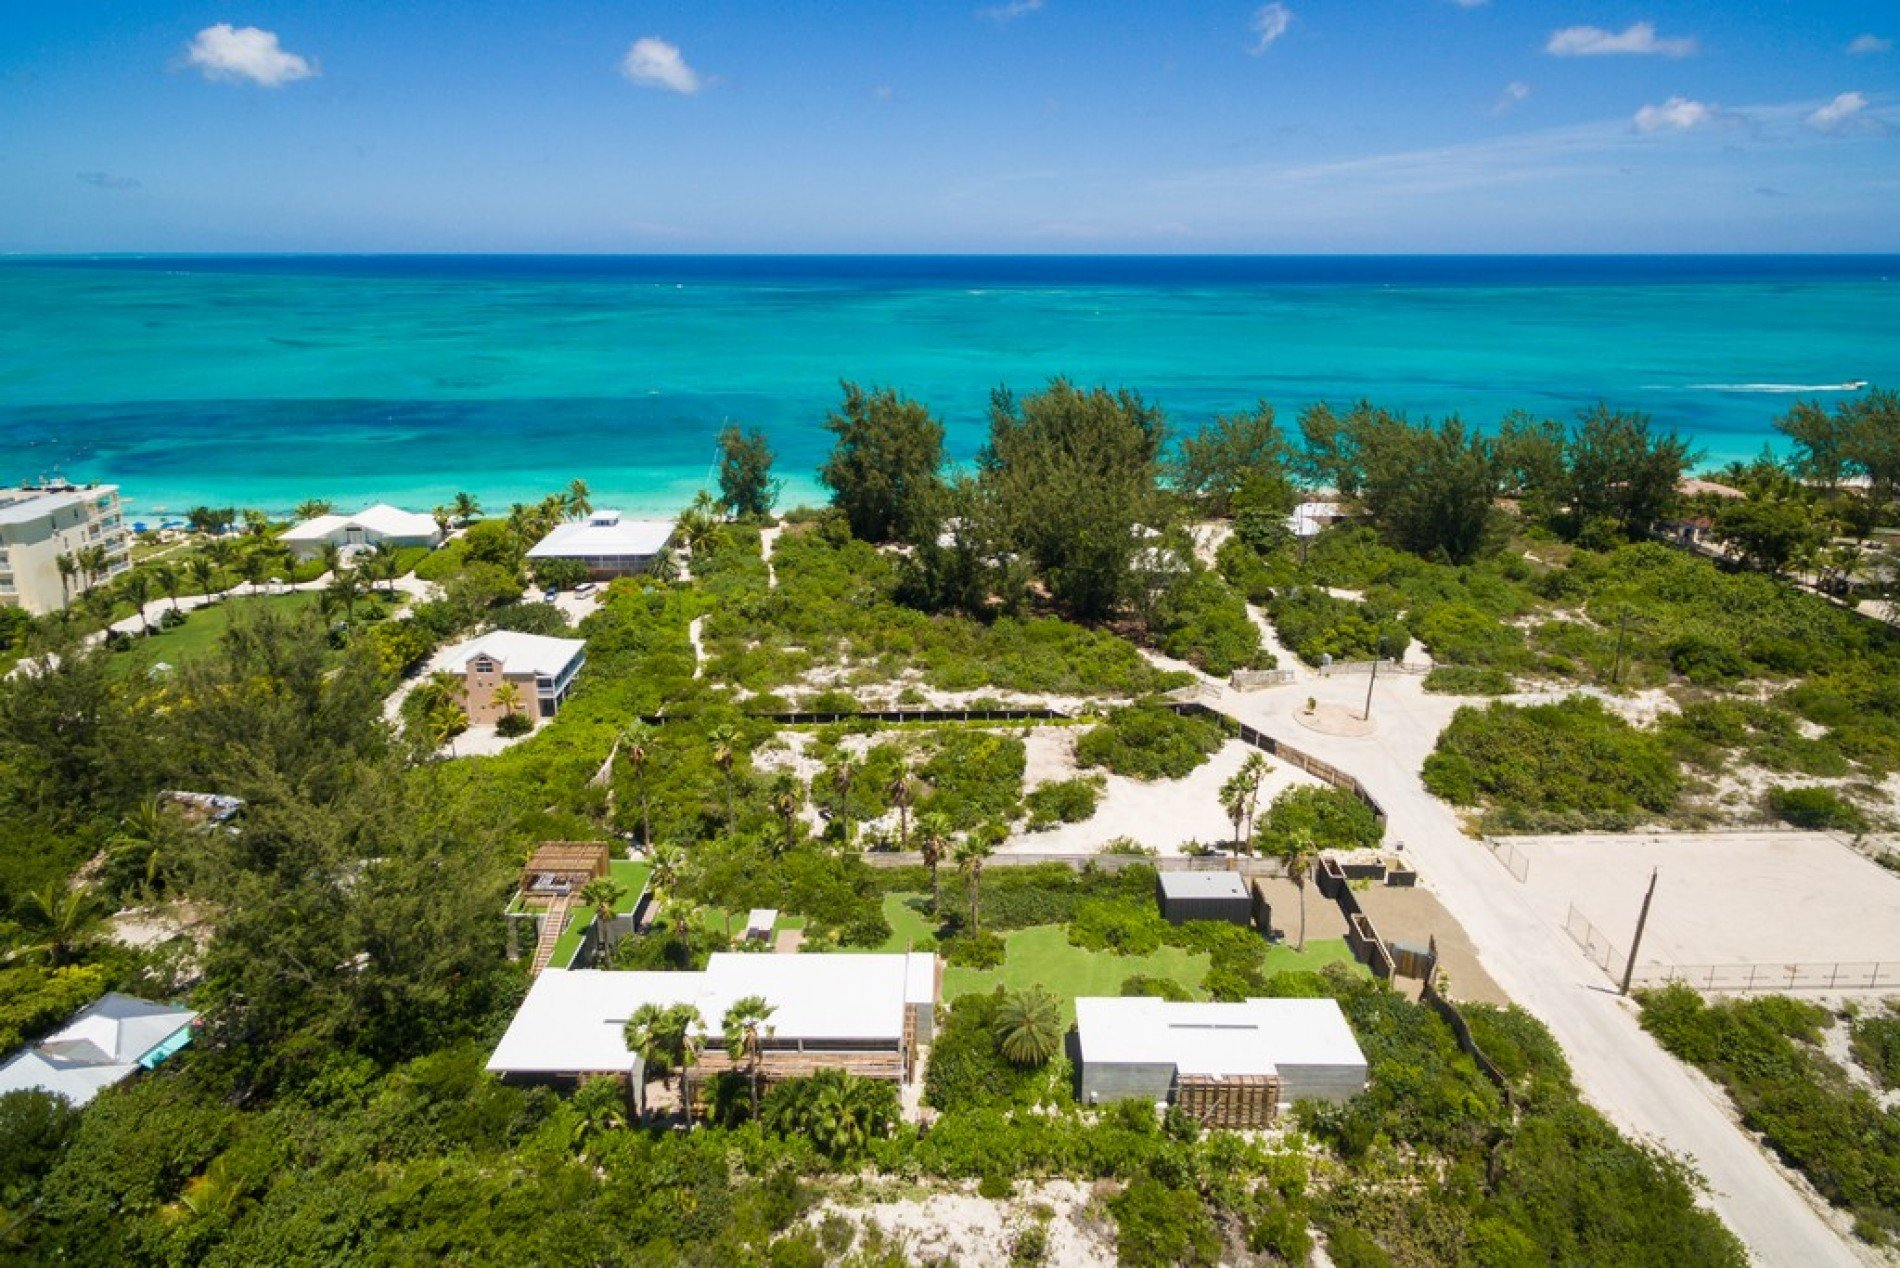 Islander | Luxury Villas in Turks and Caicos | Grace Bay